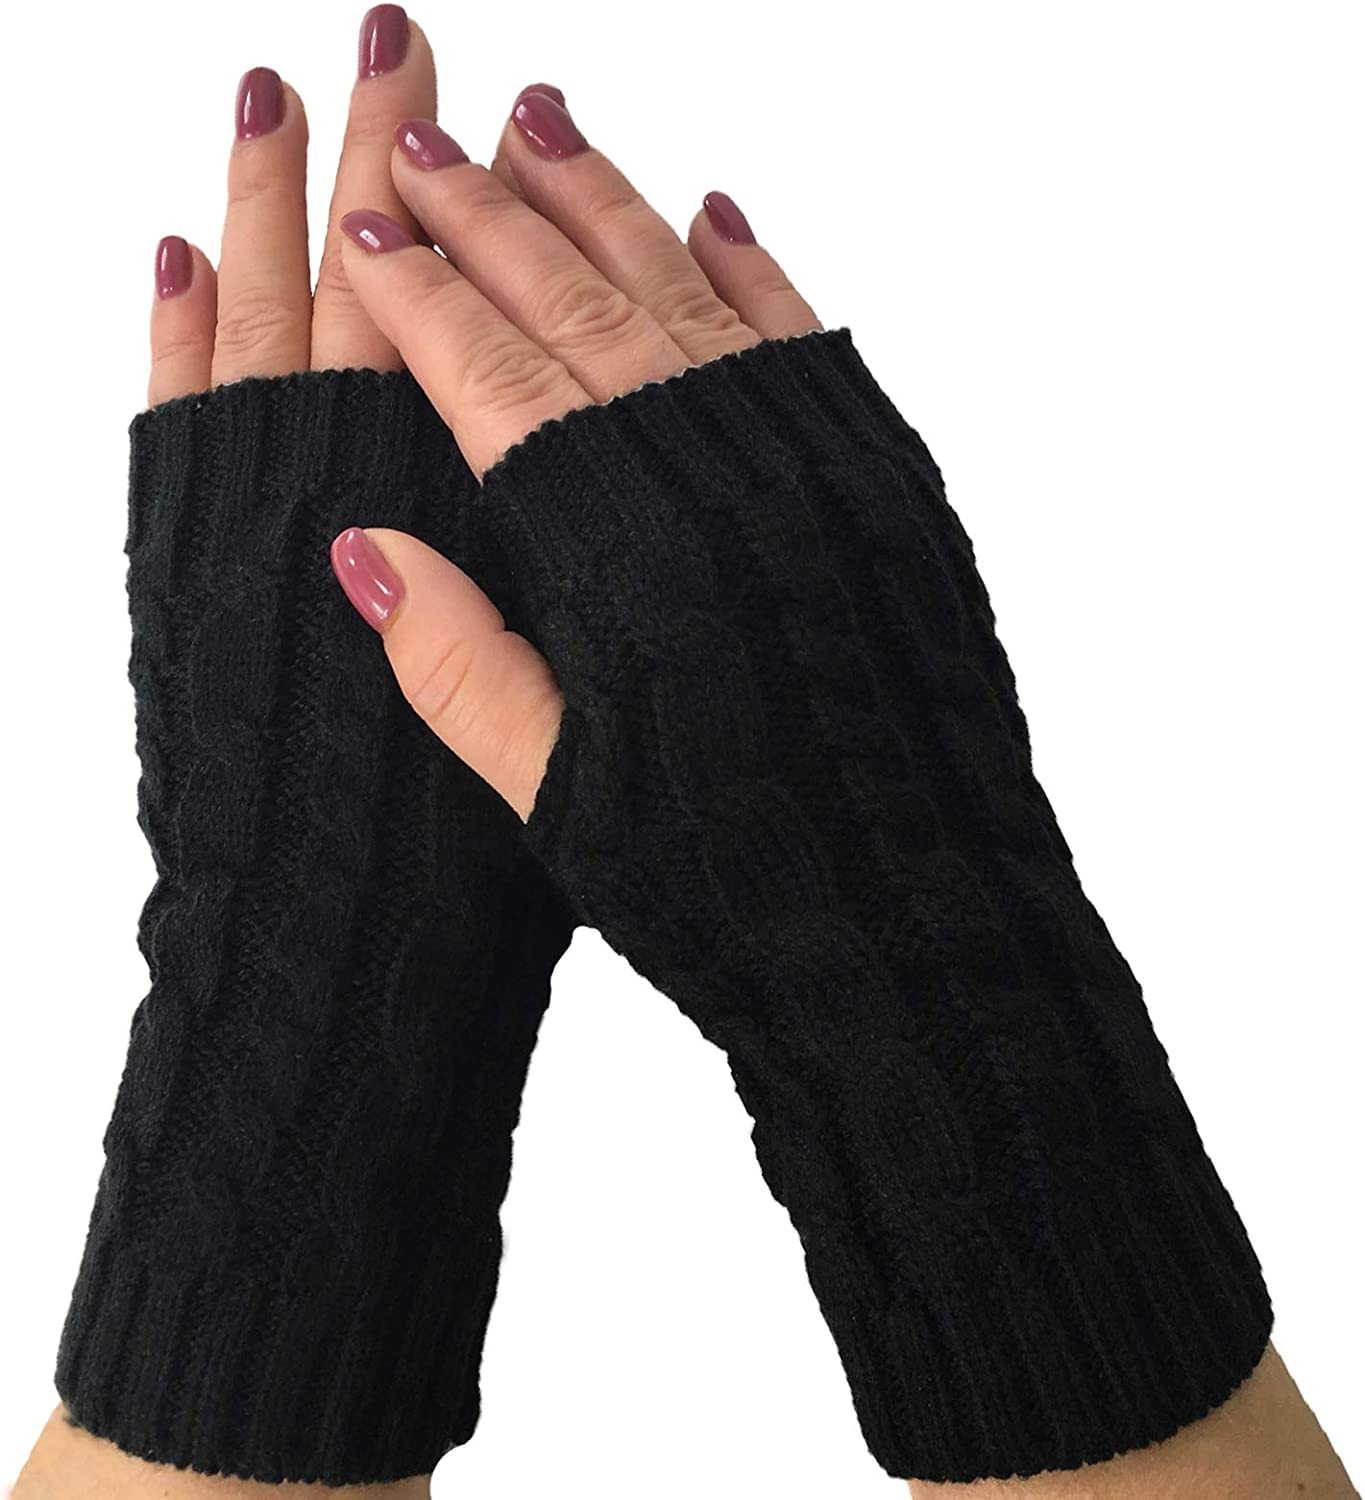 Fashion Culture Women's Cable Knit Fingerless Texting Gloves, Black